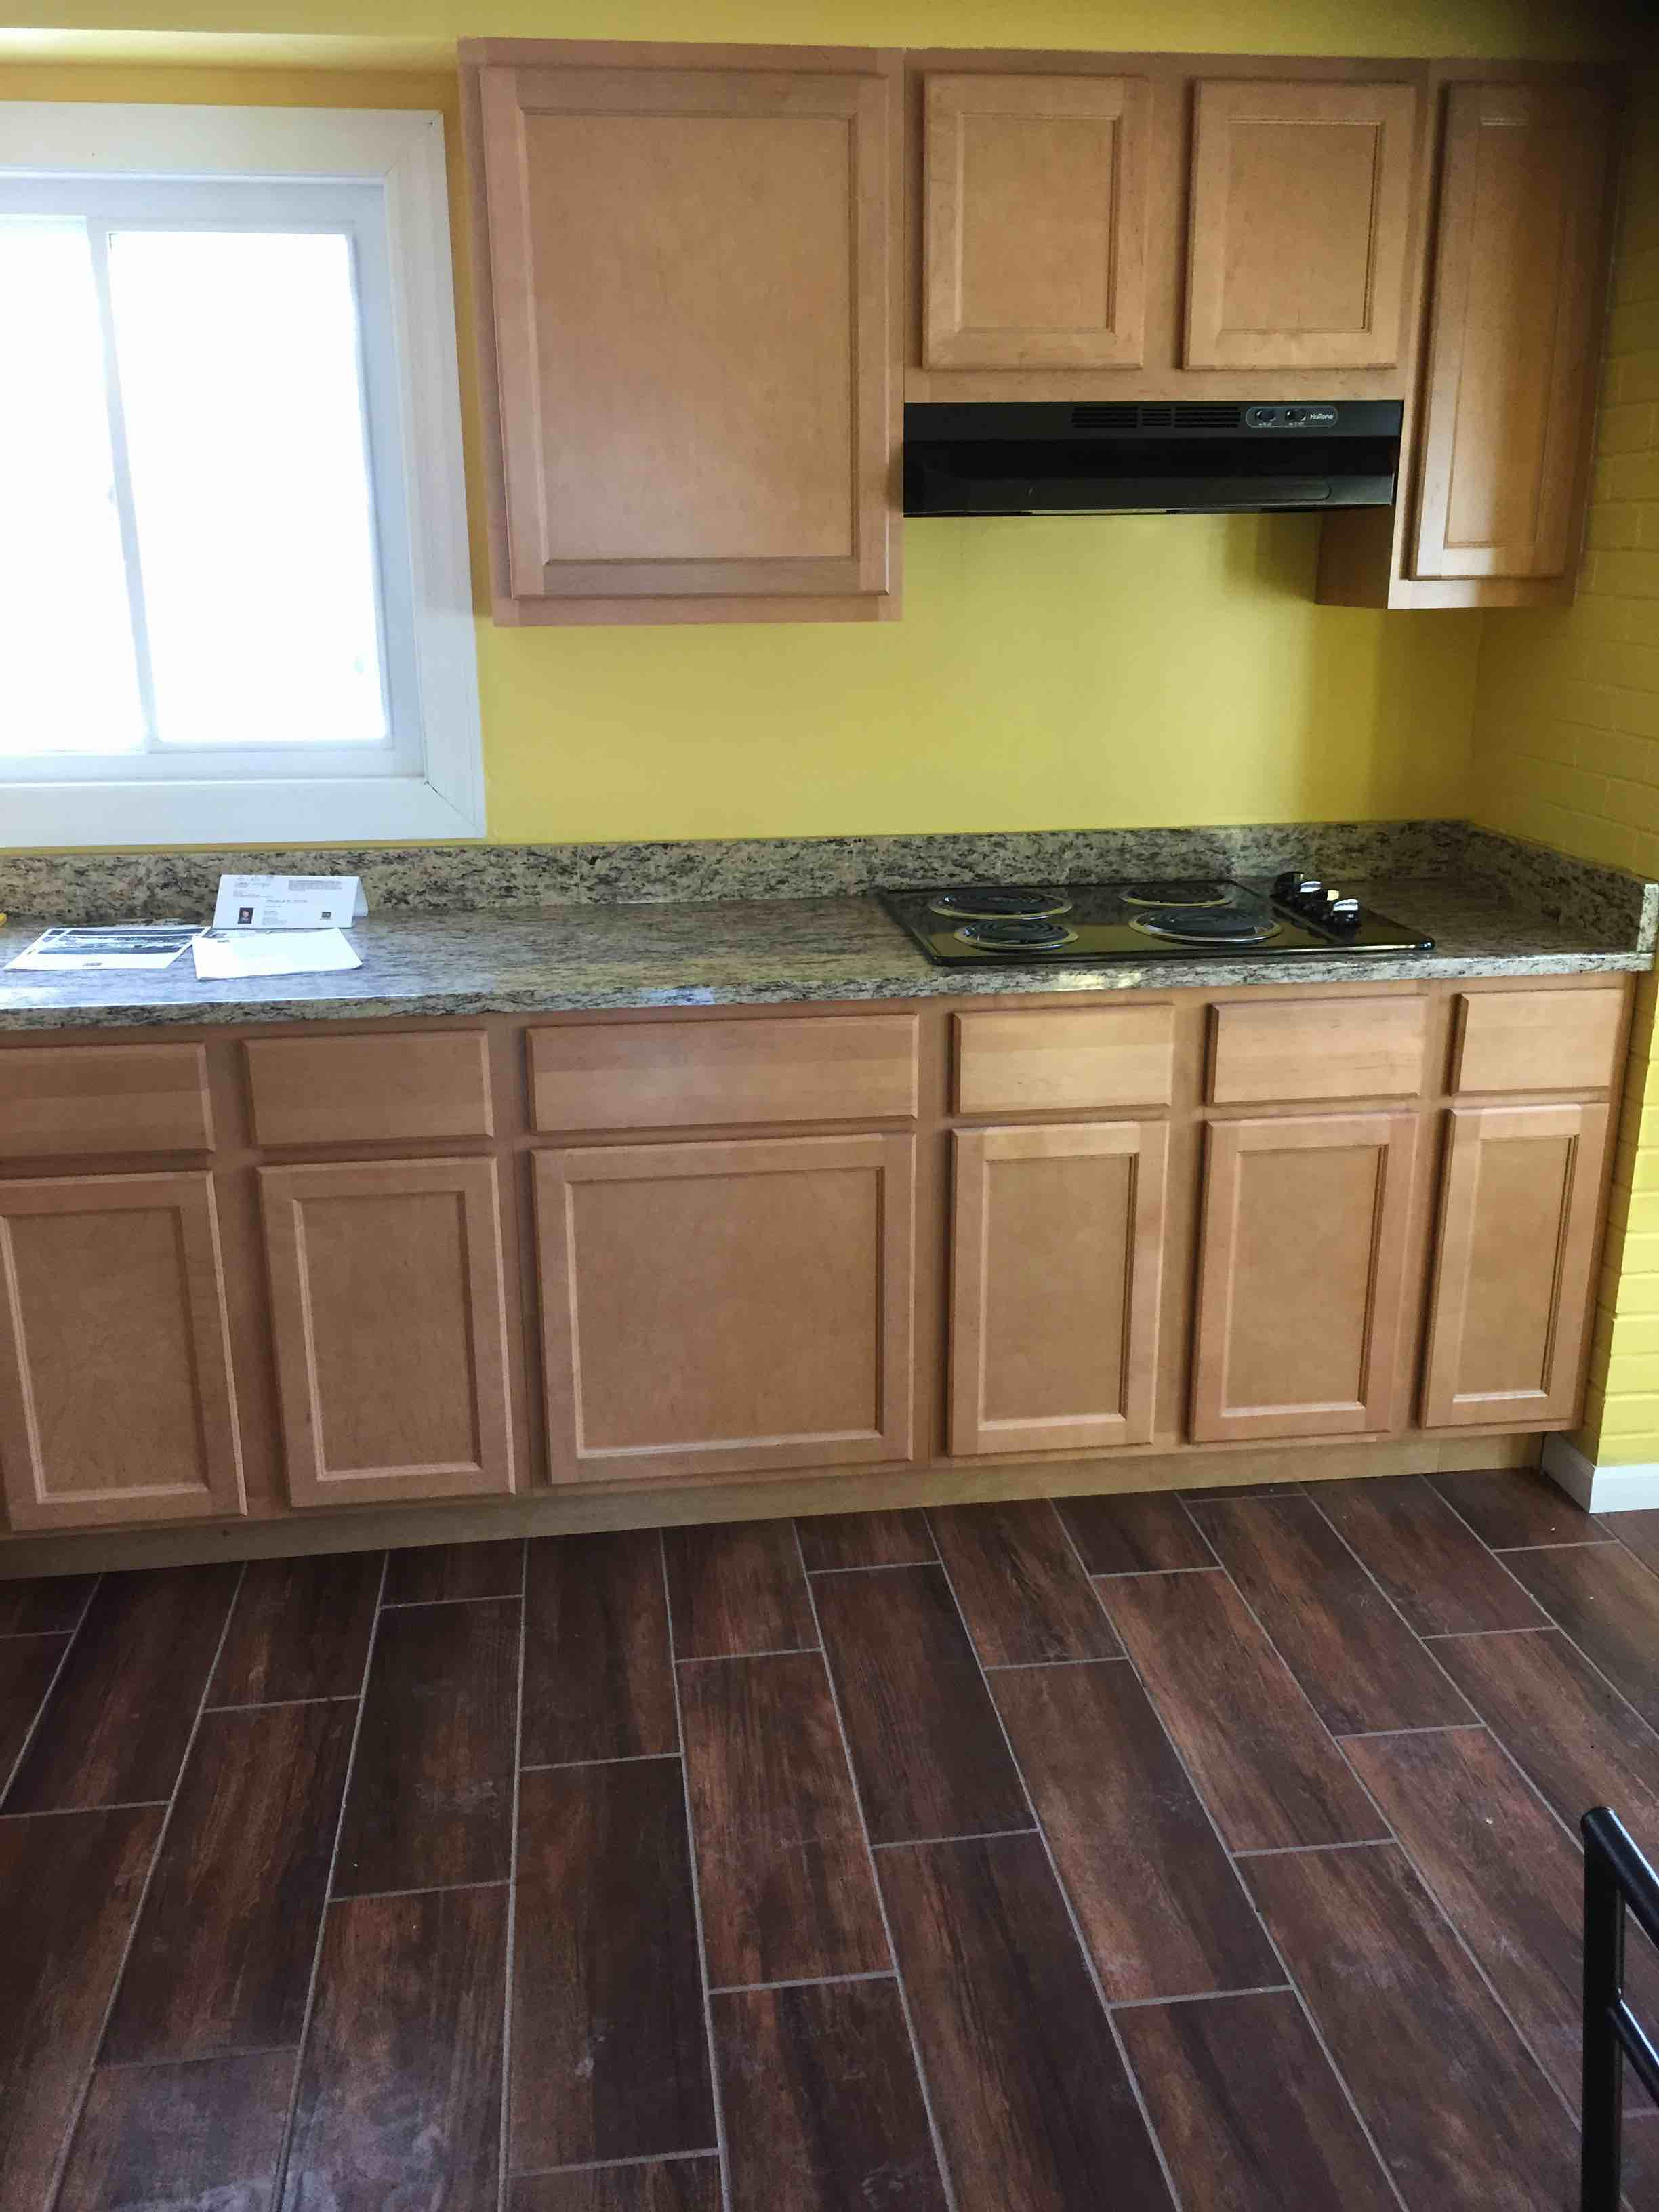 New cabinet, countertops and floors